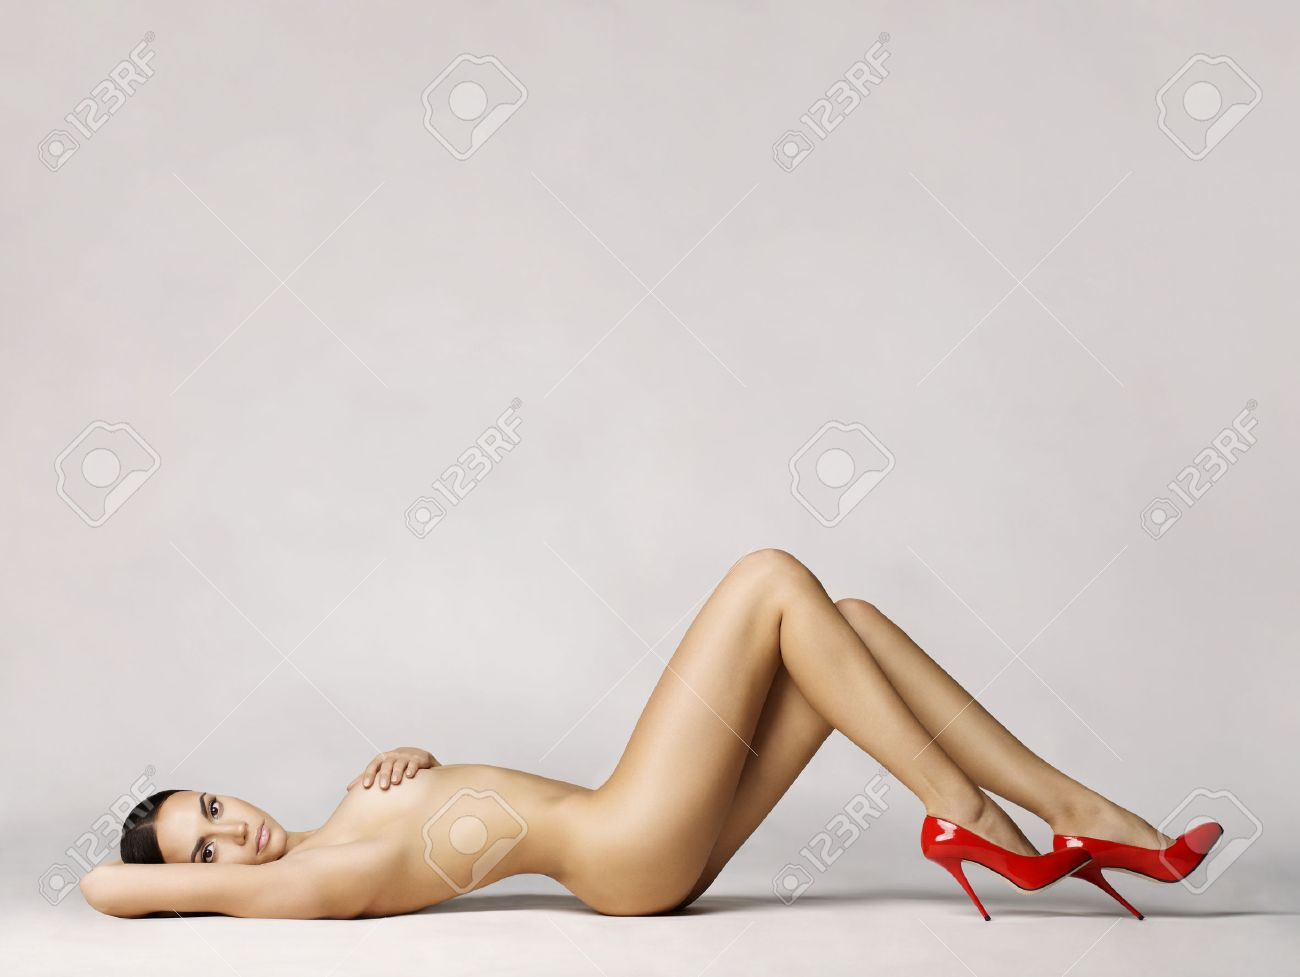 elegant naked woman in red shoes laying on white background Standard-Bild - 34349717